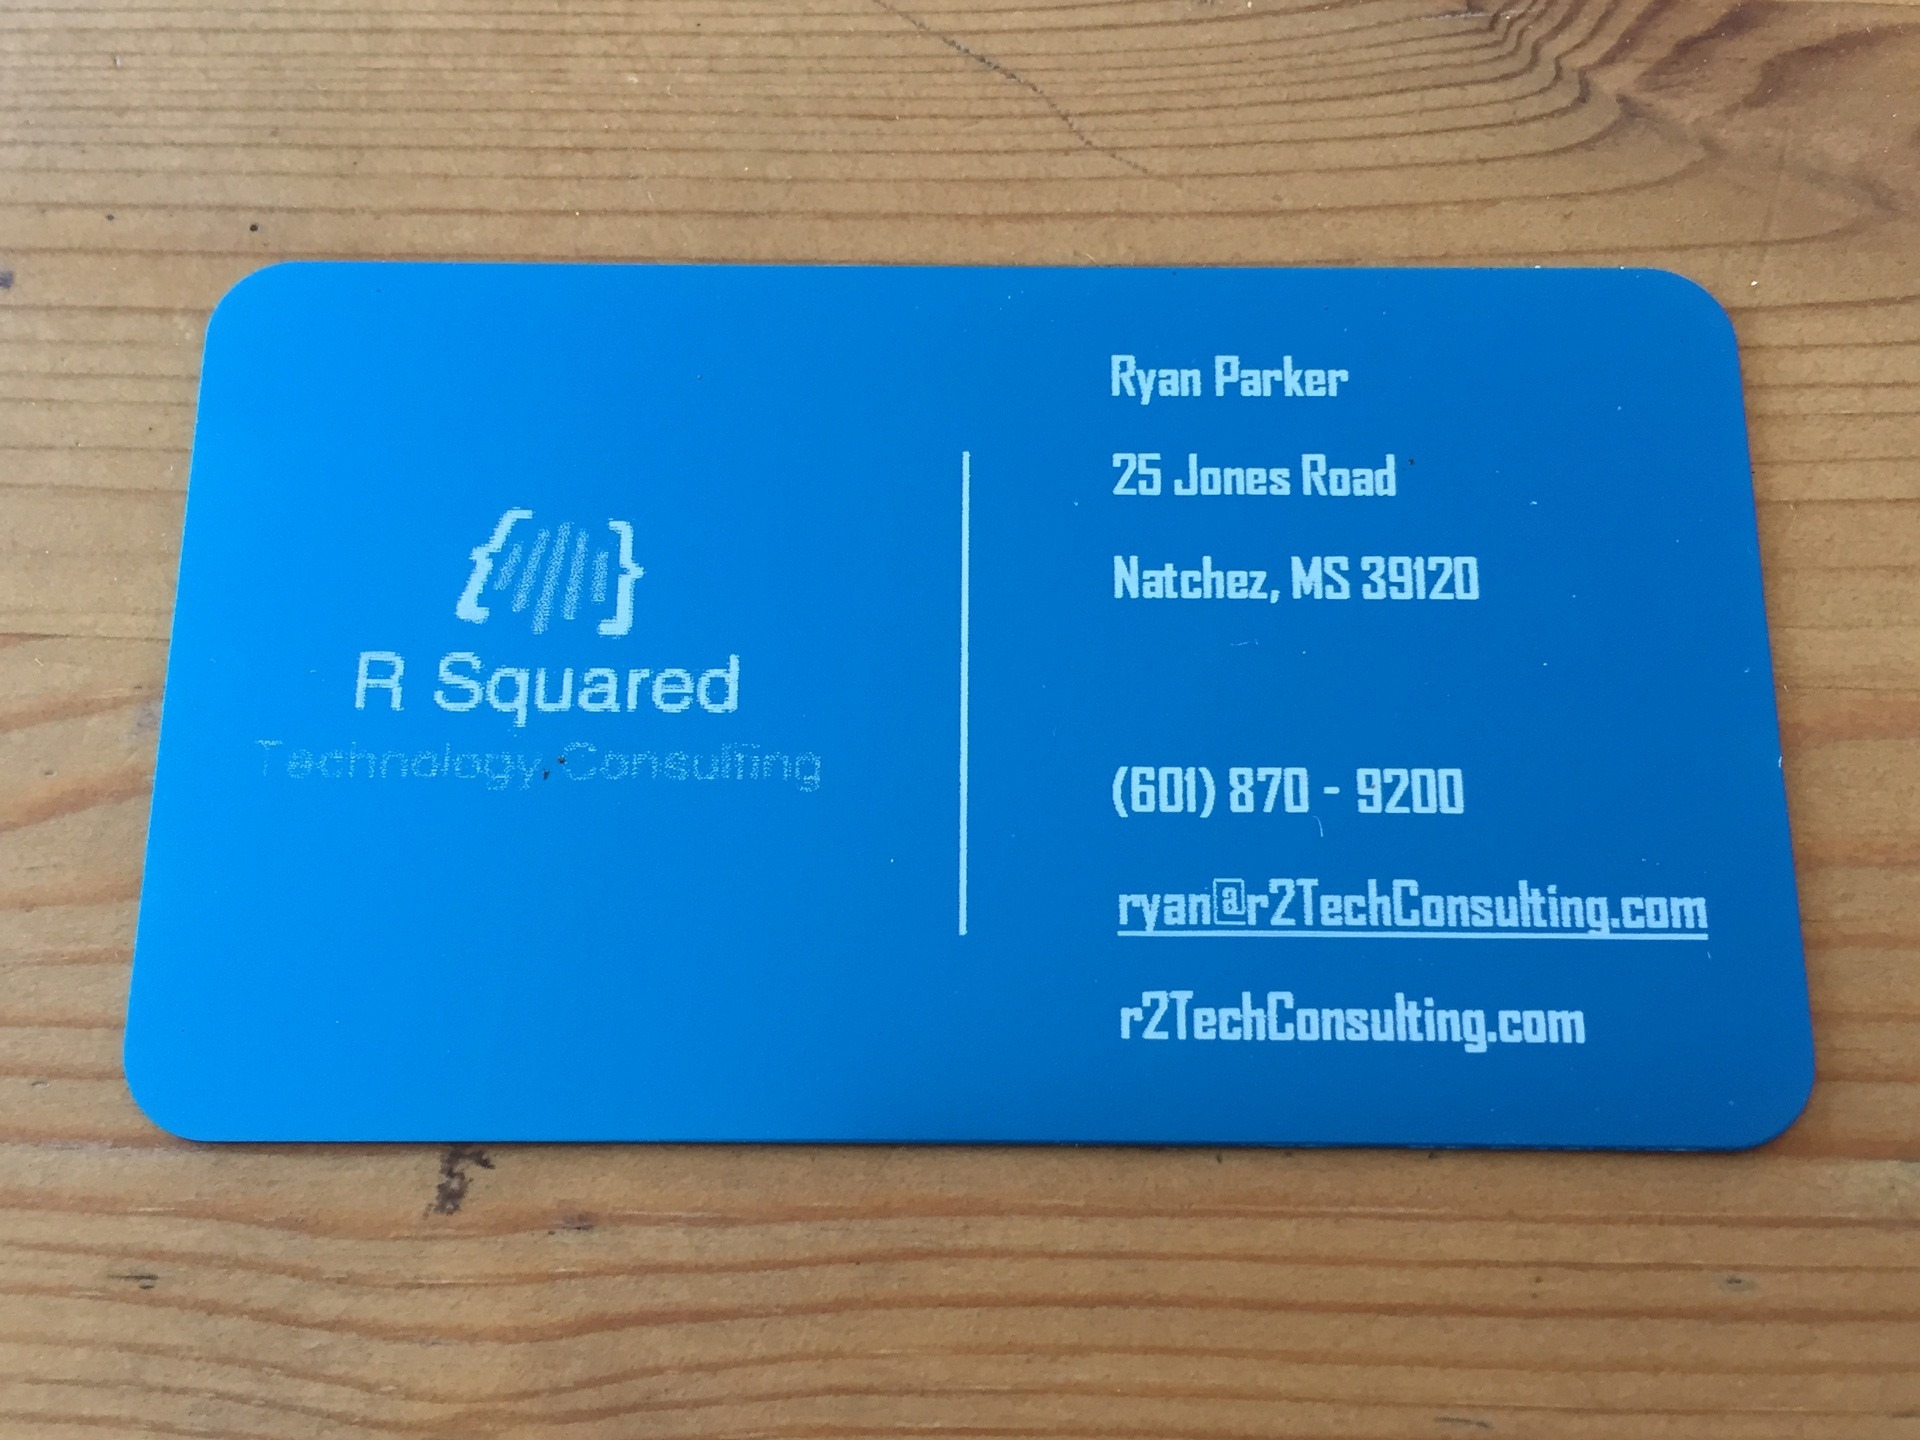 Studio eQ -- Thick Blue Laser-Etched Metal Business Cards